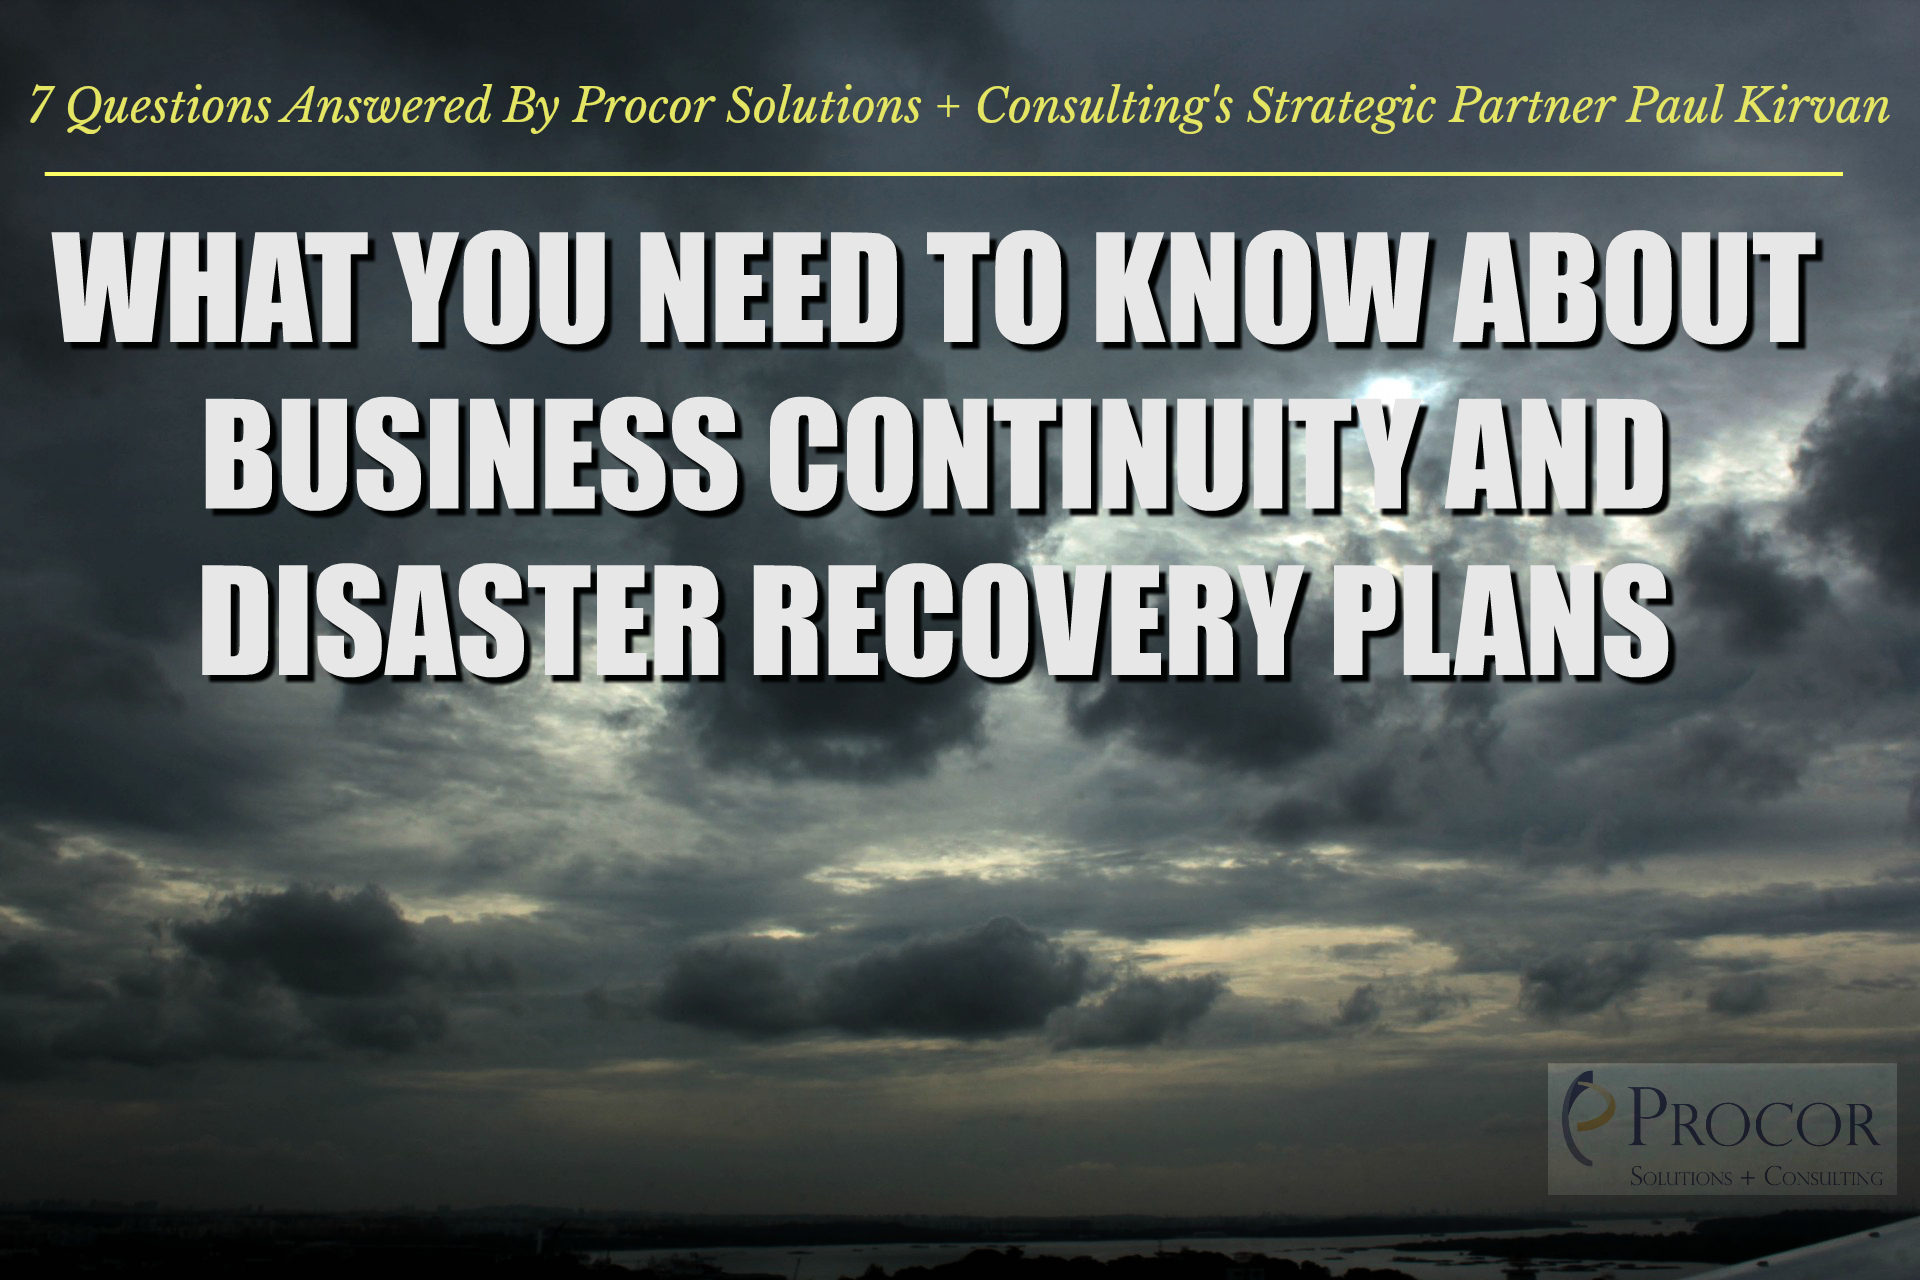 WHAT EVERY BUSINESS NEEDS TO KNOW ABOUT BUSINESS CONTINUITY AND DISASTER RECOVERY PLANS